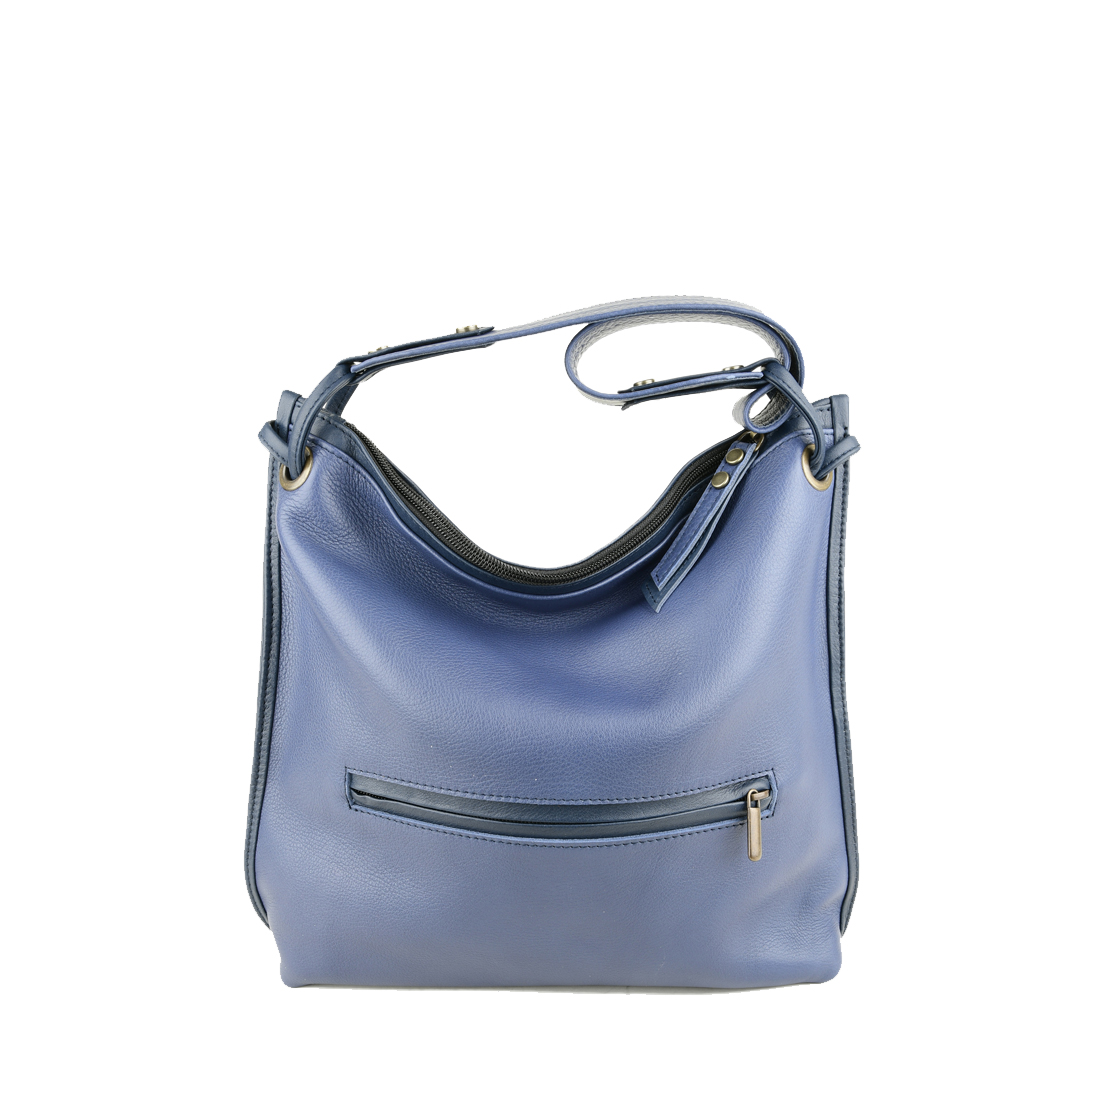 Maria Chalk blue Leather Shoulder Bag